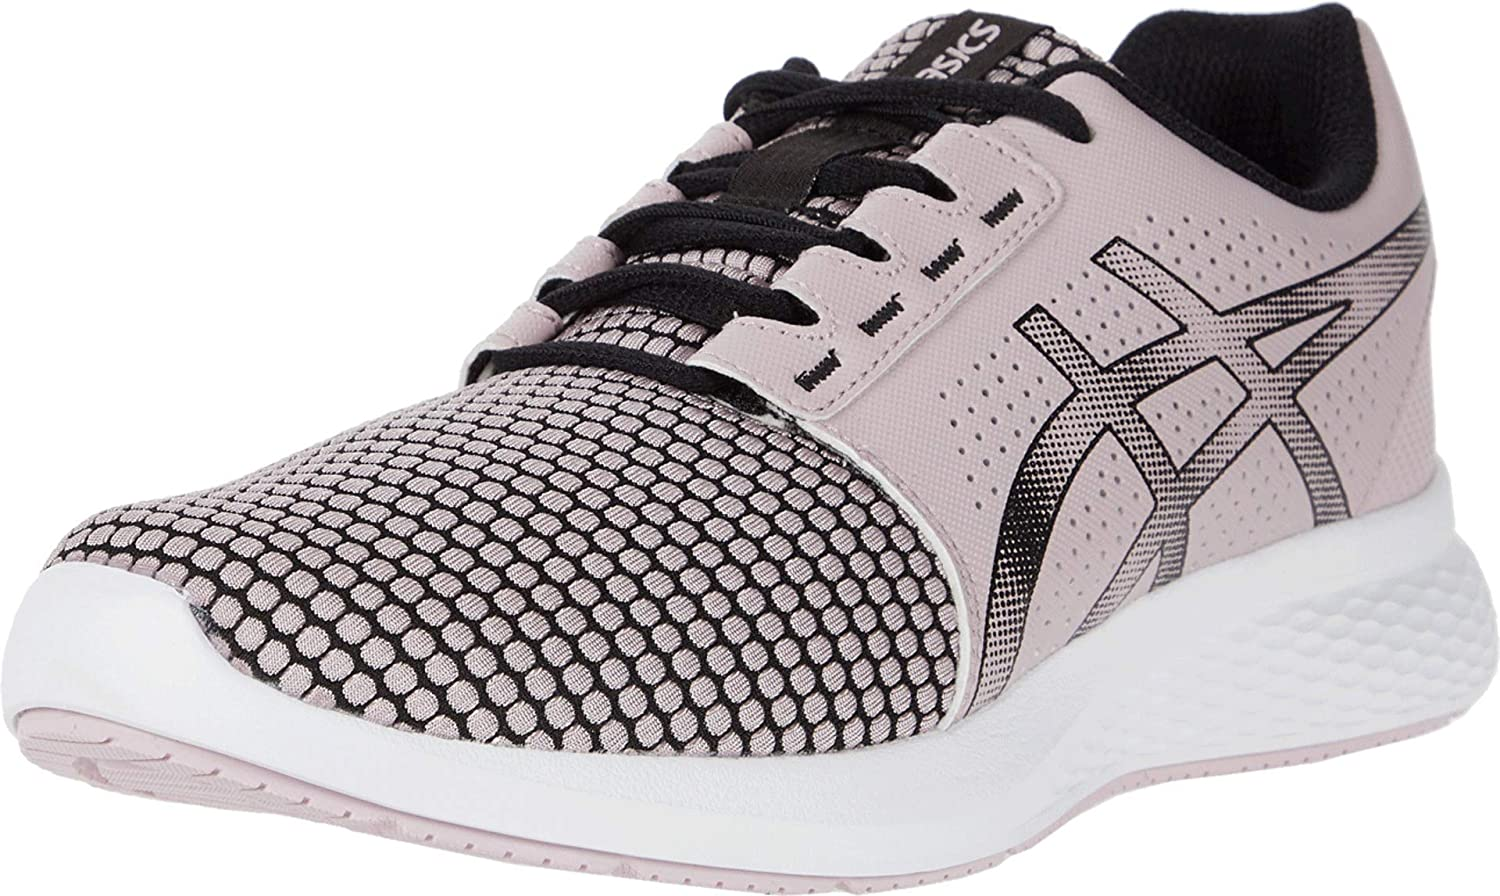 ASICS Womens Gel-Torrance 2 Shoes, 10.5M, Watershed Rose/Black: Amazon.es: Zapatos y complementos